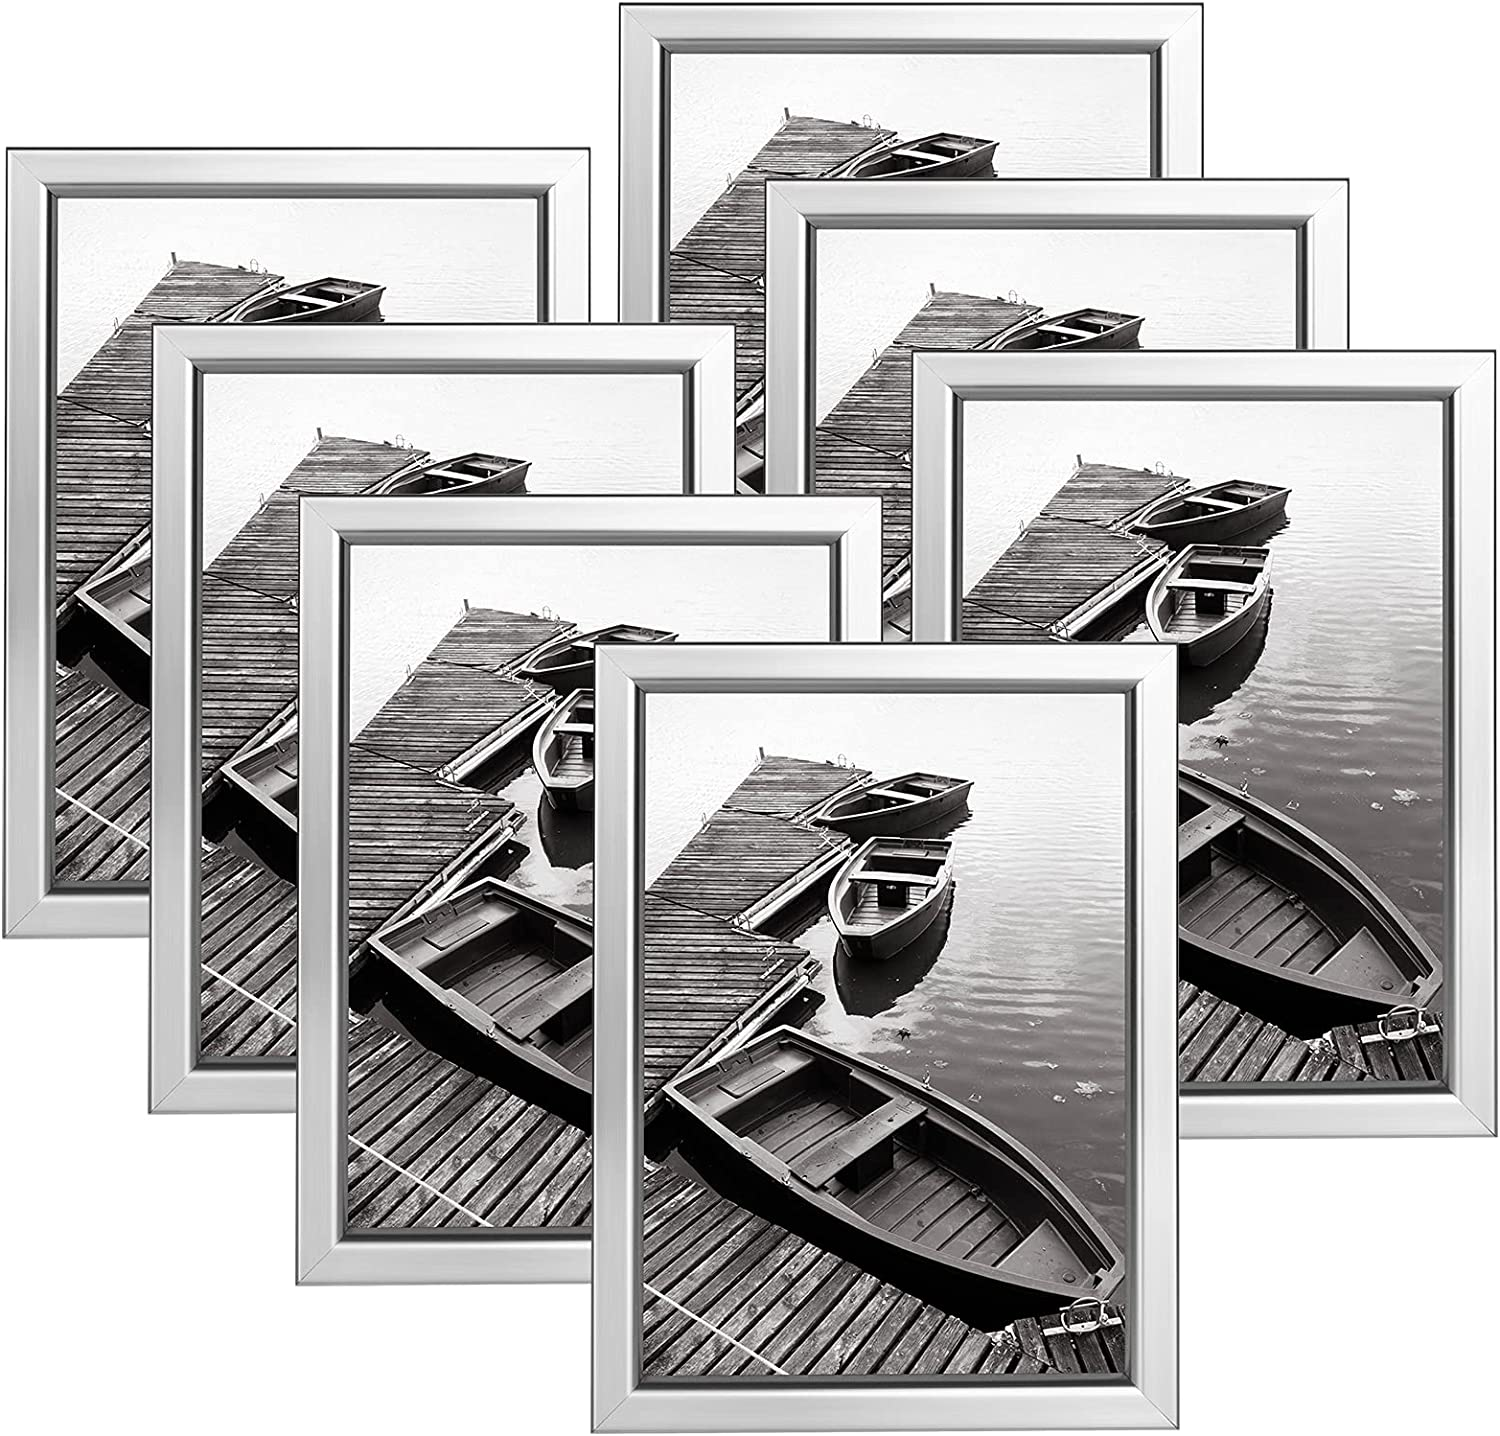 Giverny 5x7 Picture Frames Set of 7, Silver Photo Frames for Wall or Tabletop Display, Simple Design Glossy Finish Frame Perfect for Home Decoration, Office, Hotel and Various Ceremonies Praties